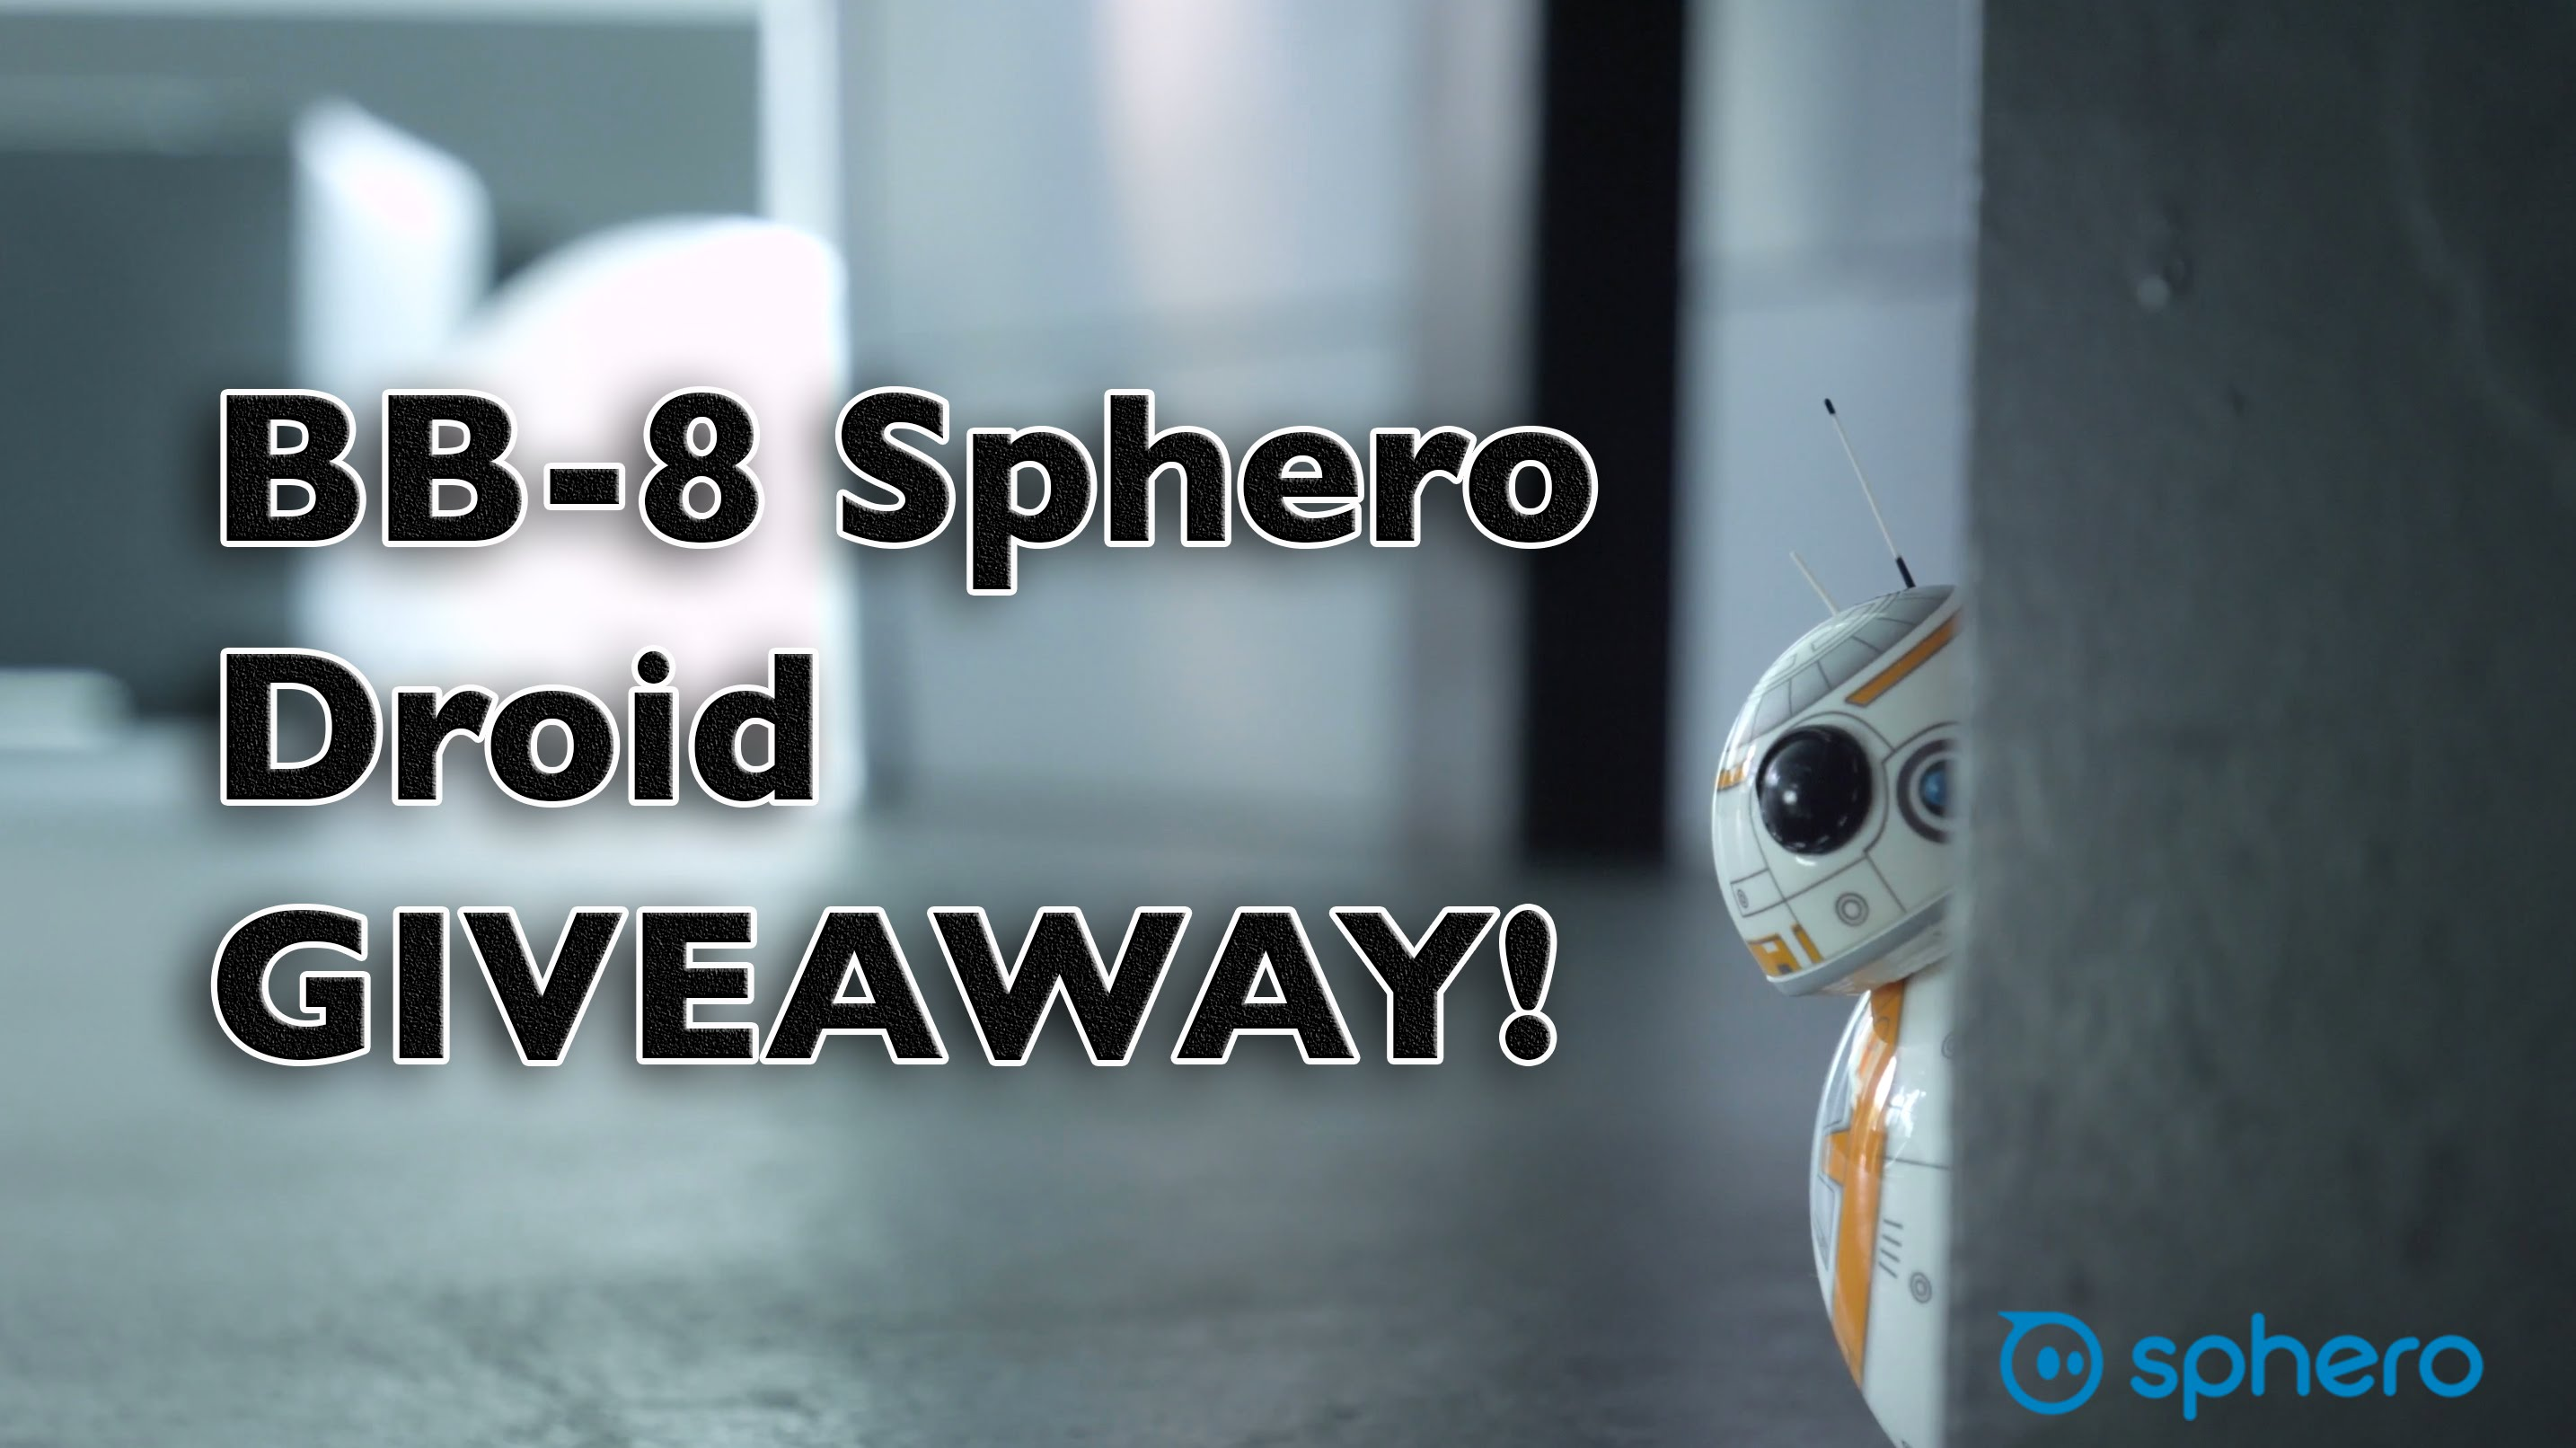 Star Wars BB-8 Sphero Droid: Giveaway!!! (CLOSED)